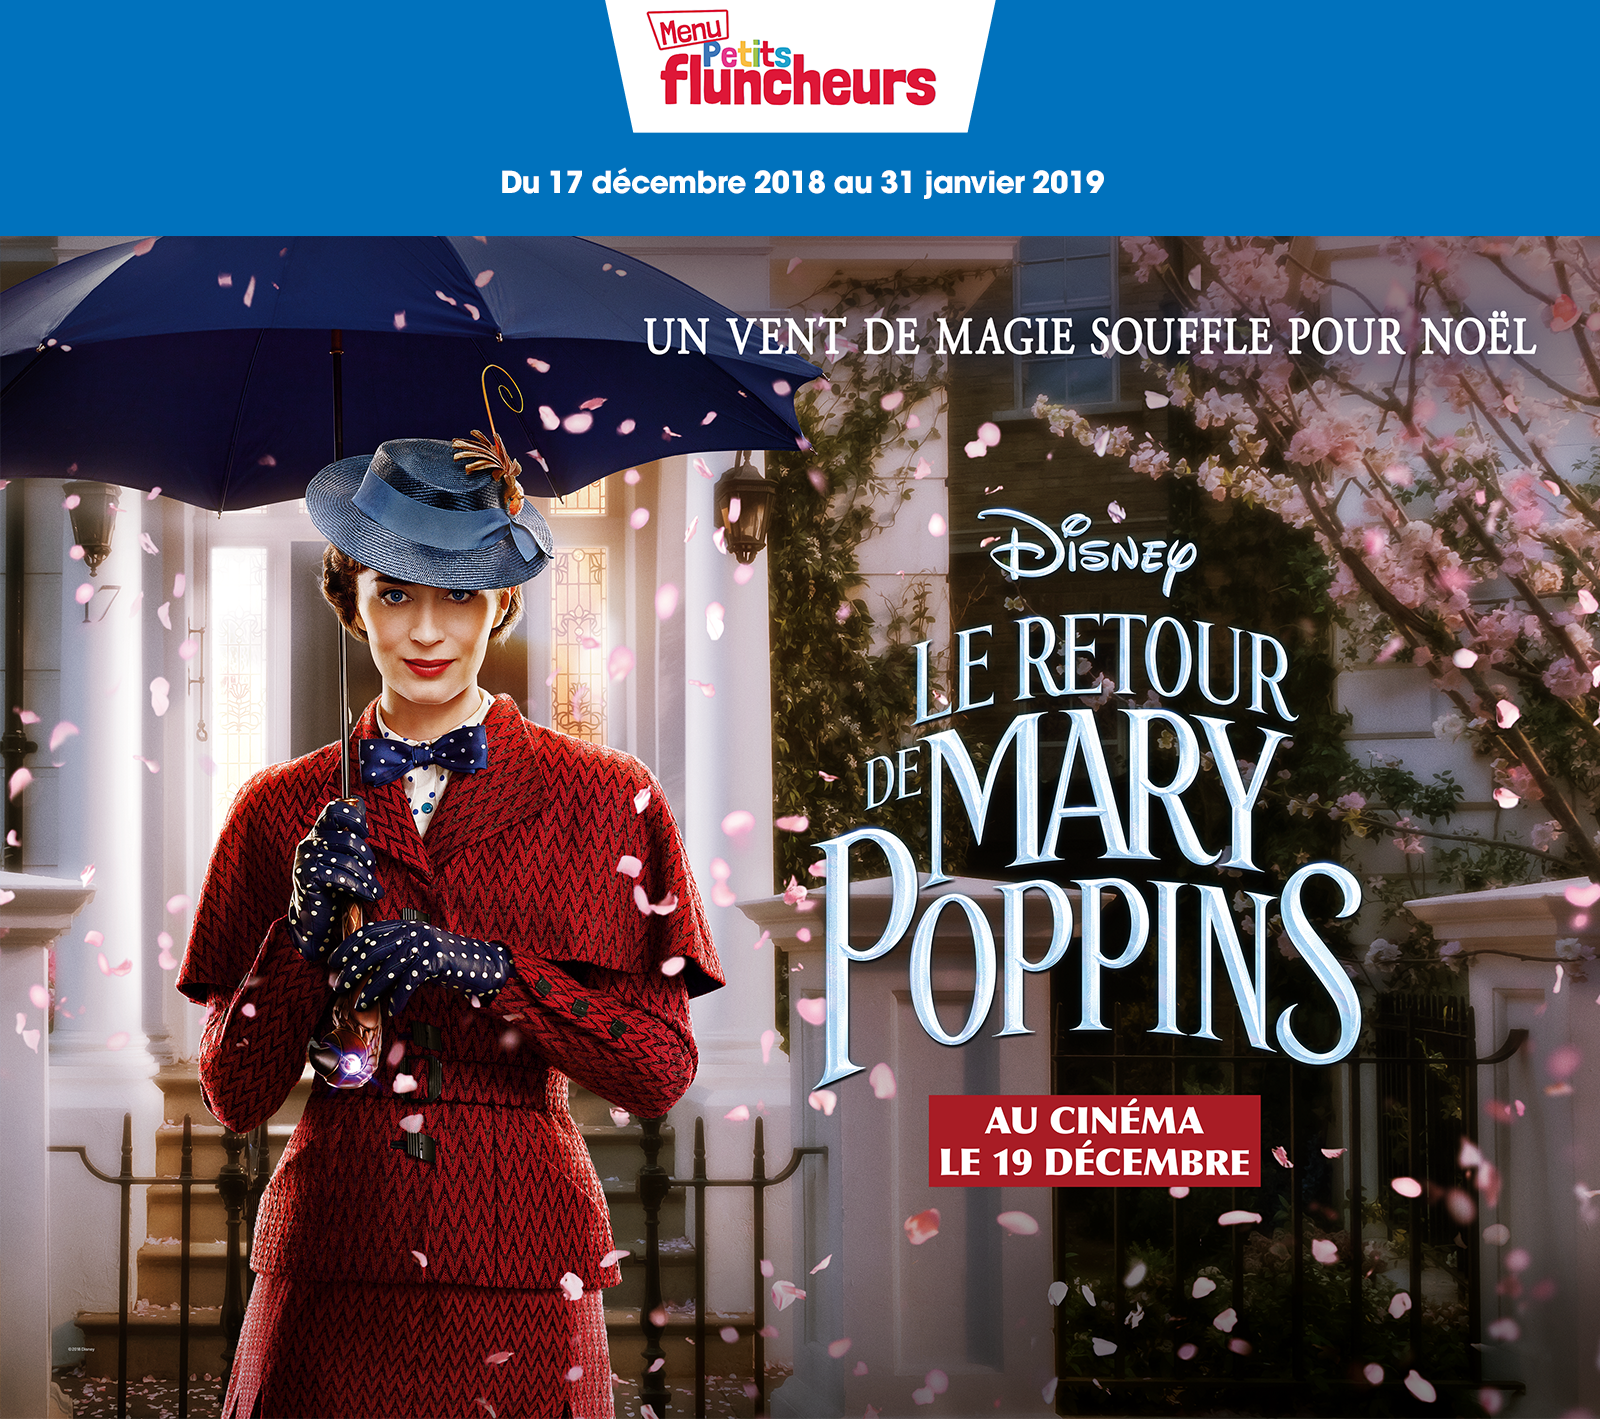 mary poppins flunch